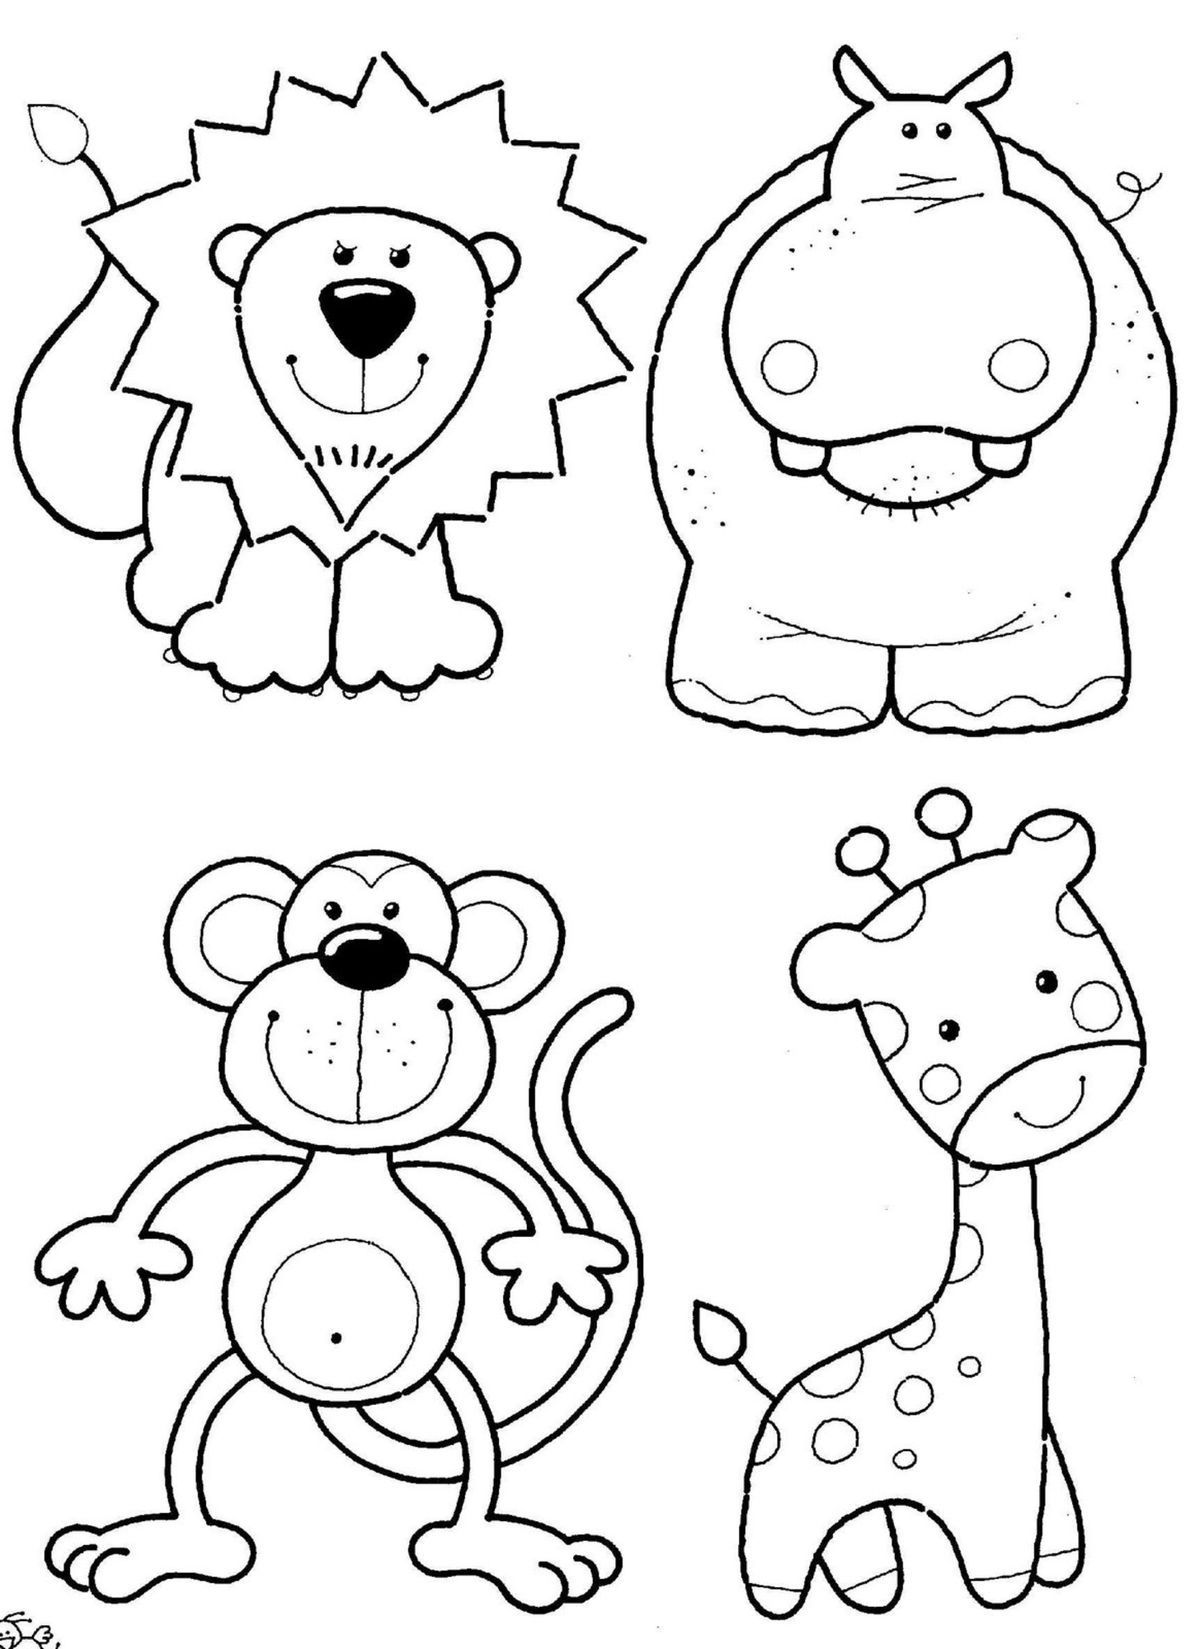 Patron With Images Zoo Animal Coloring Pages Animal Coloring